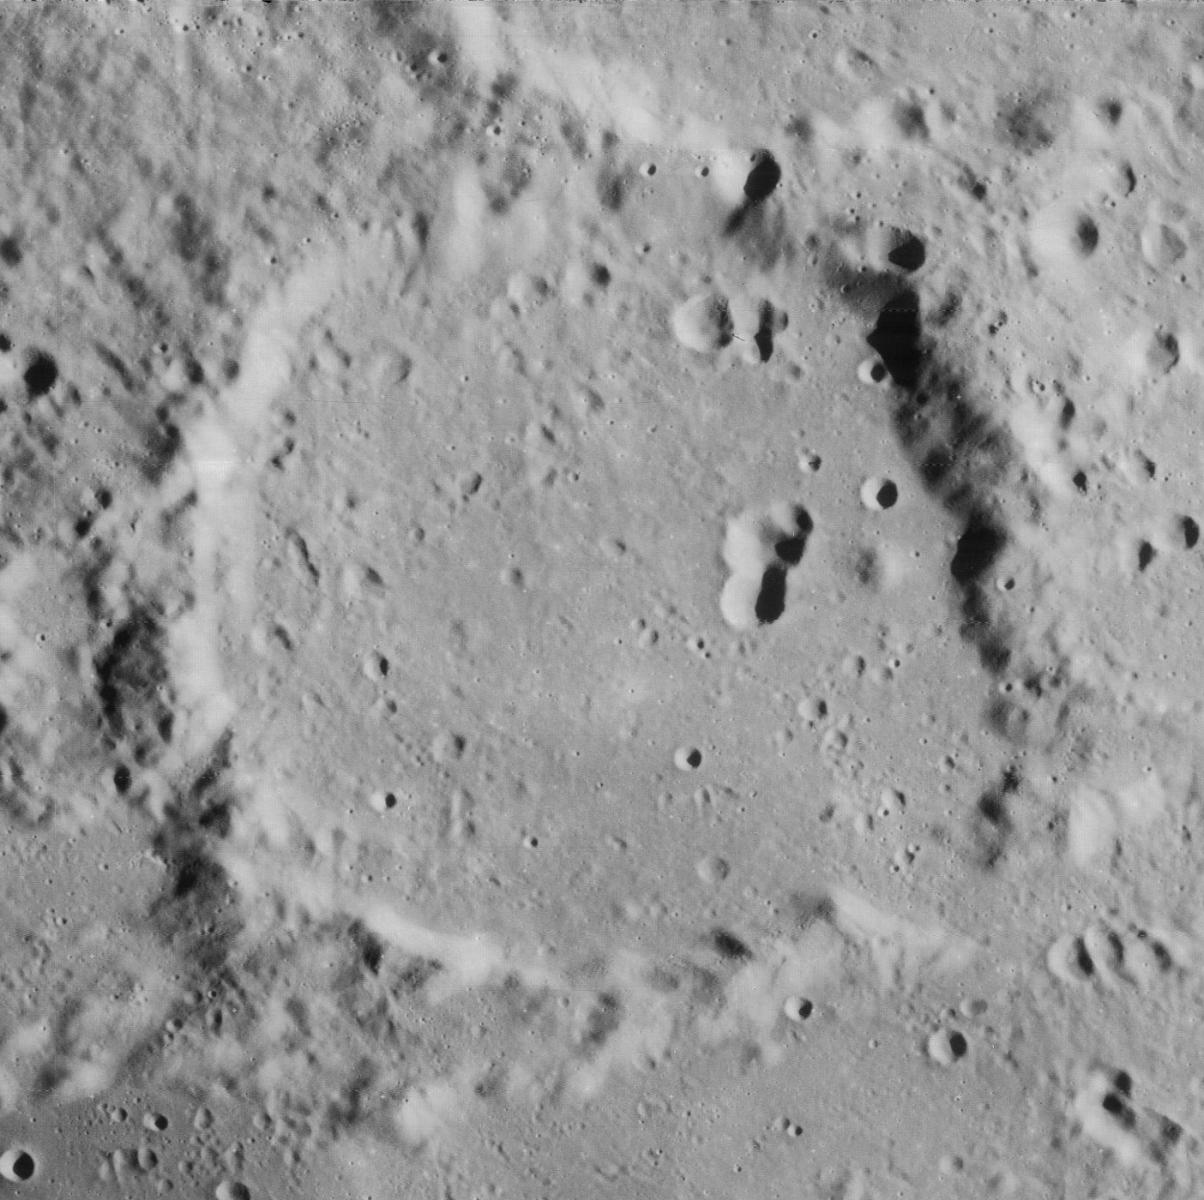 crater impact coursework If you want to visit one of the visible impact craters on earth, you'll need to do a little planning many of the world's best craters aren't close to major cities, but they can be reached if you really want to see them.